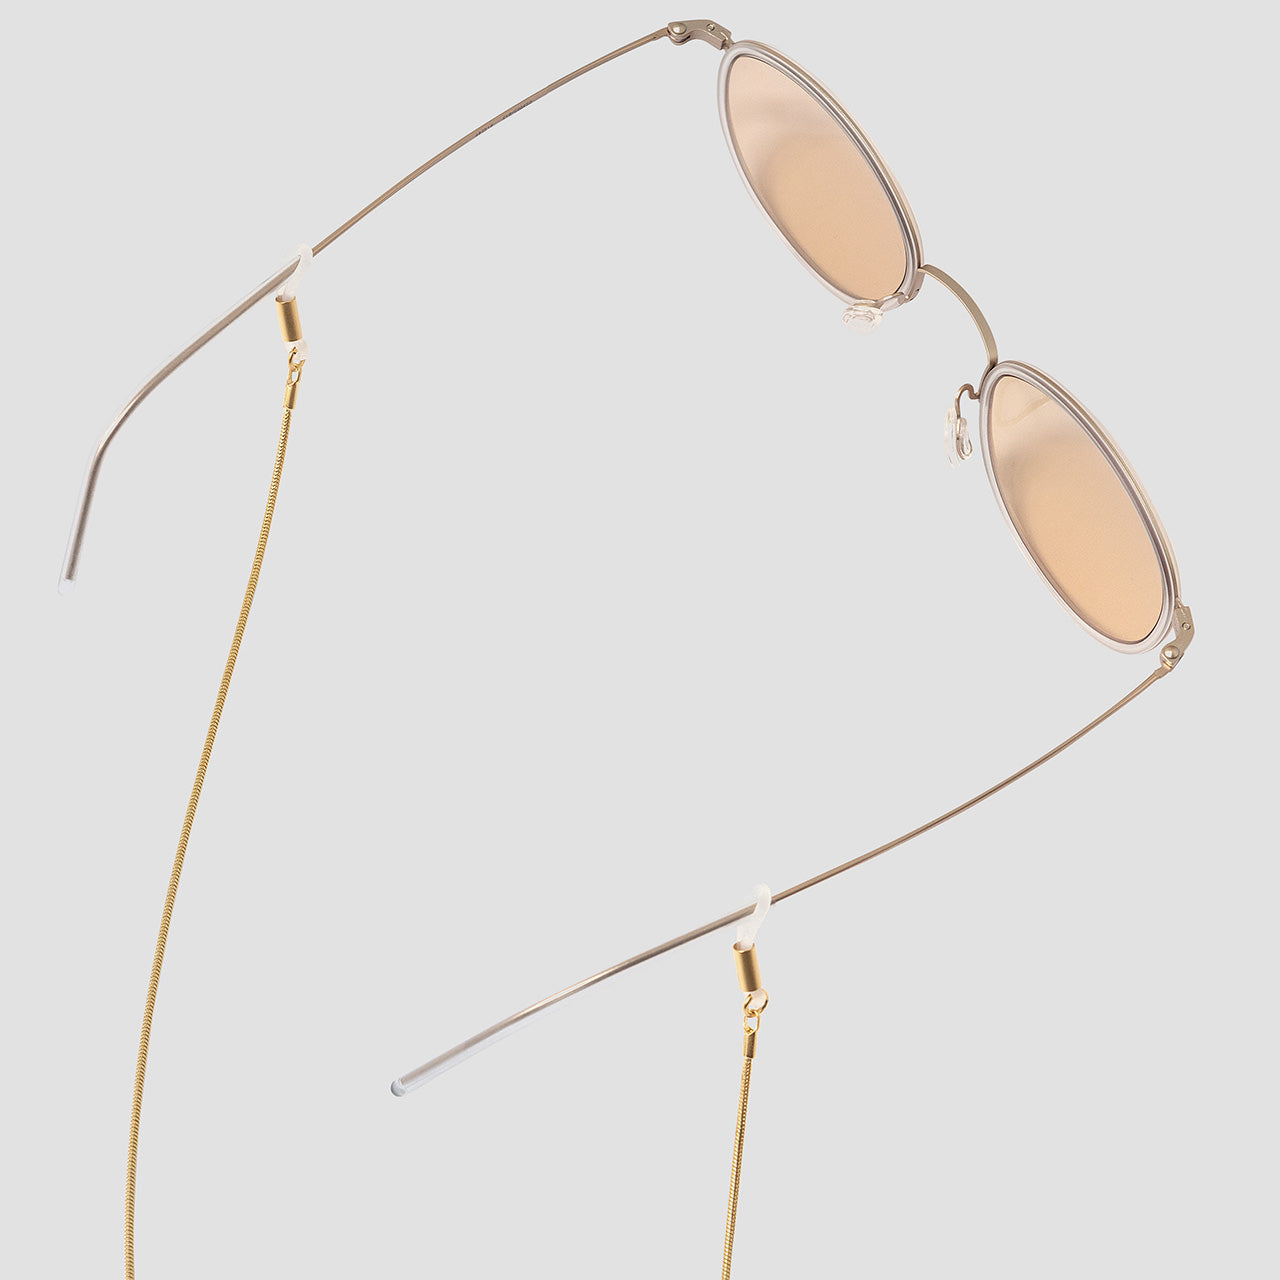 KNOK 14K gold plated Baem Glasses chain shown with sunglasses